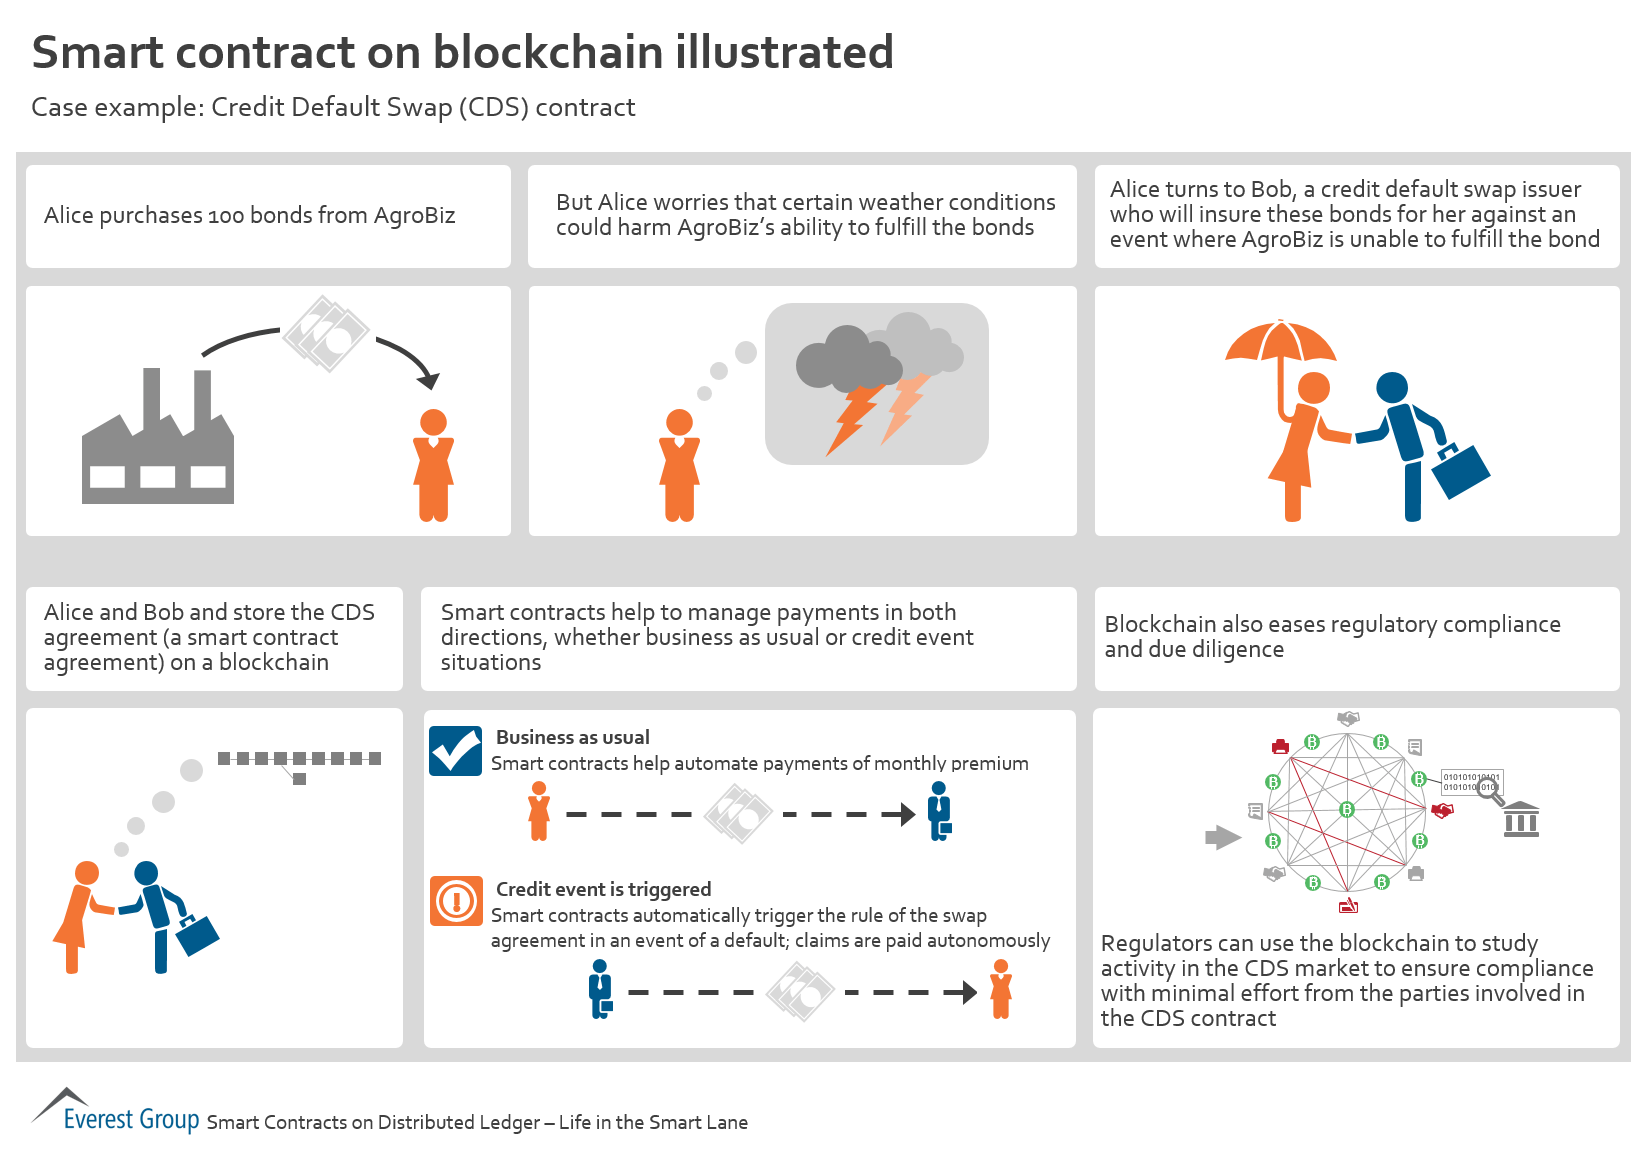 Smart Contract On Blockchain Illustrated Market Insights